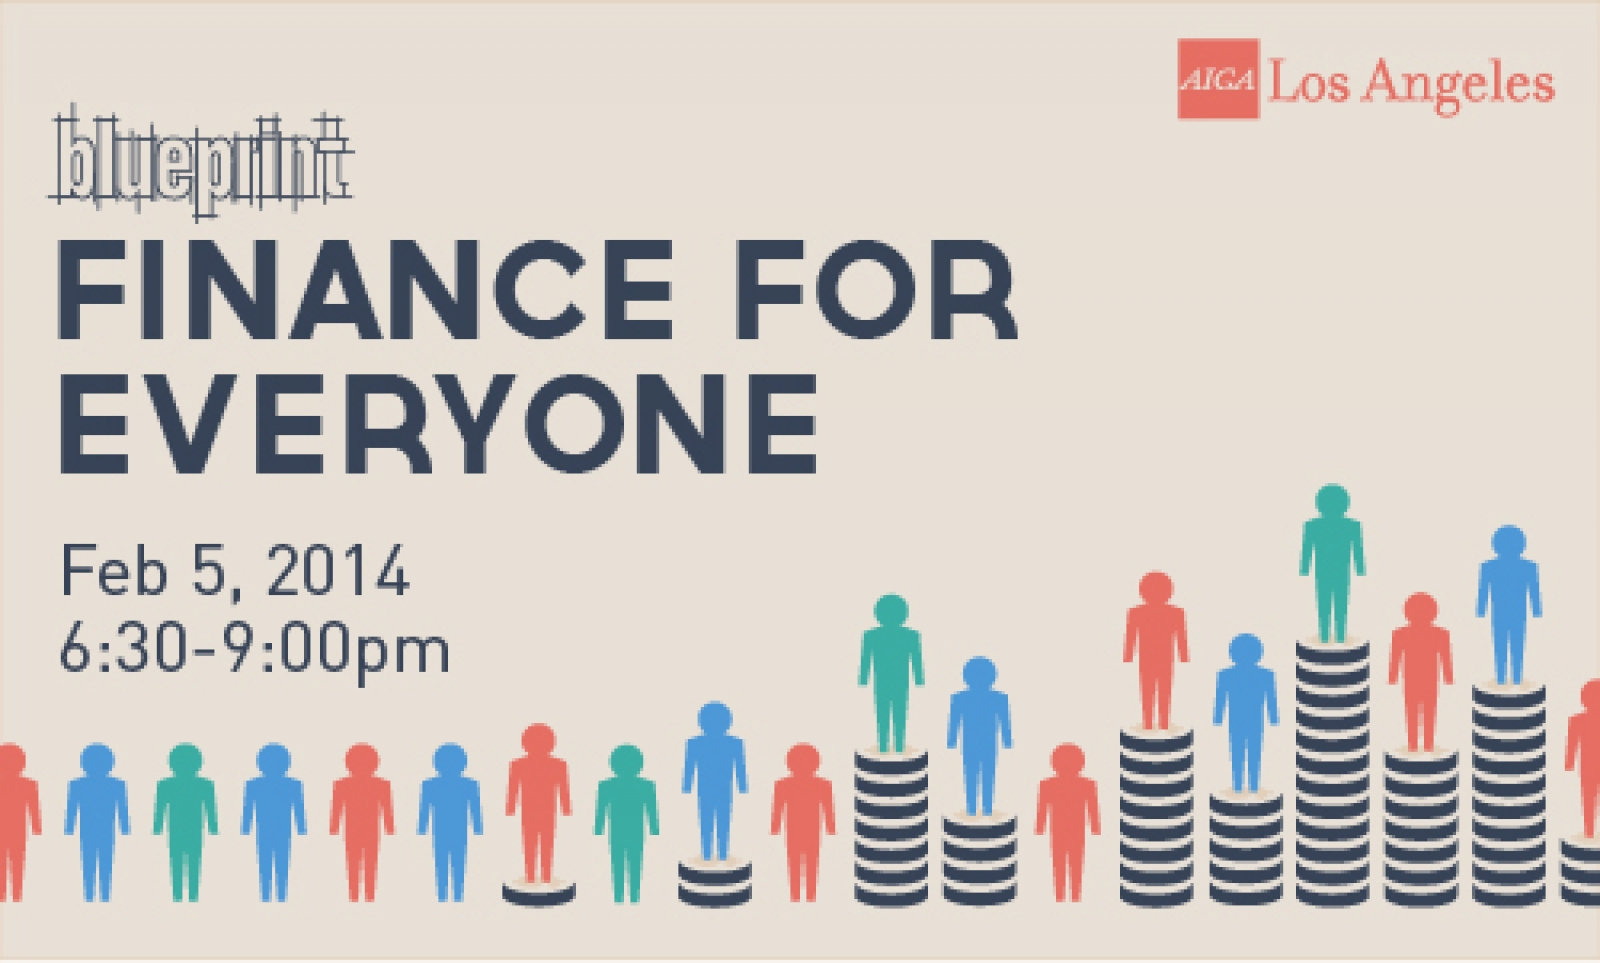 Blueprint finance for everyone aiga los angeles event image malvernweather Choice Image